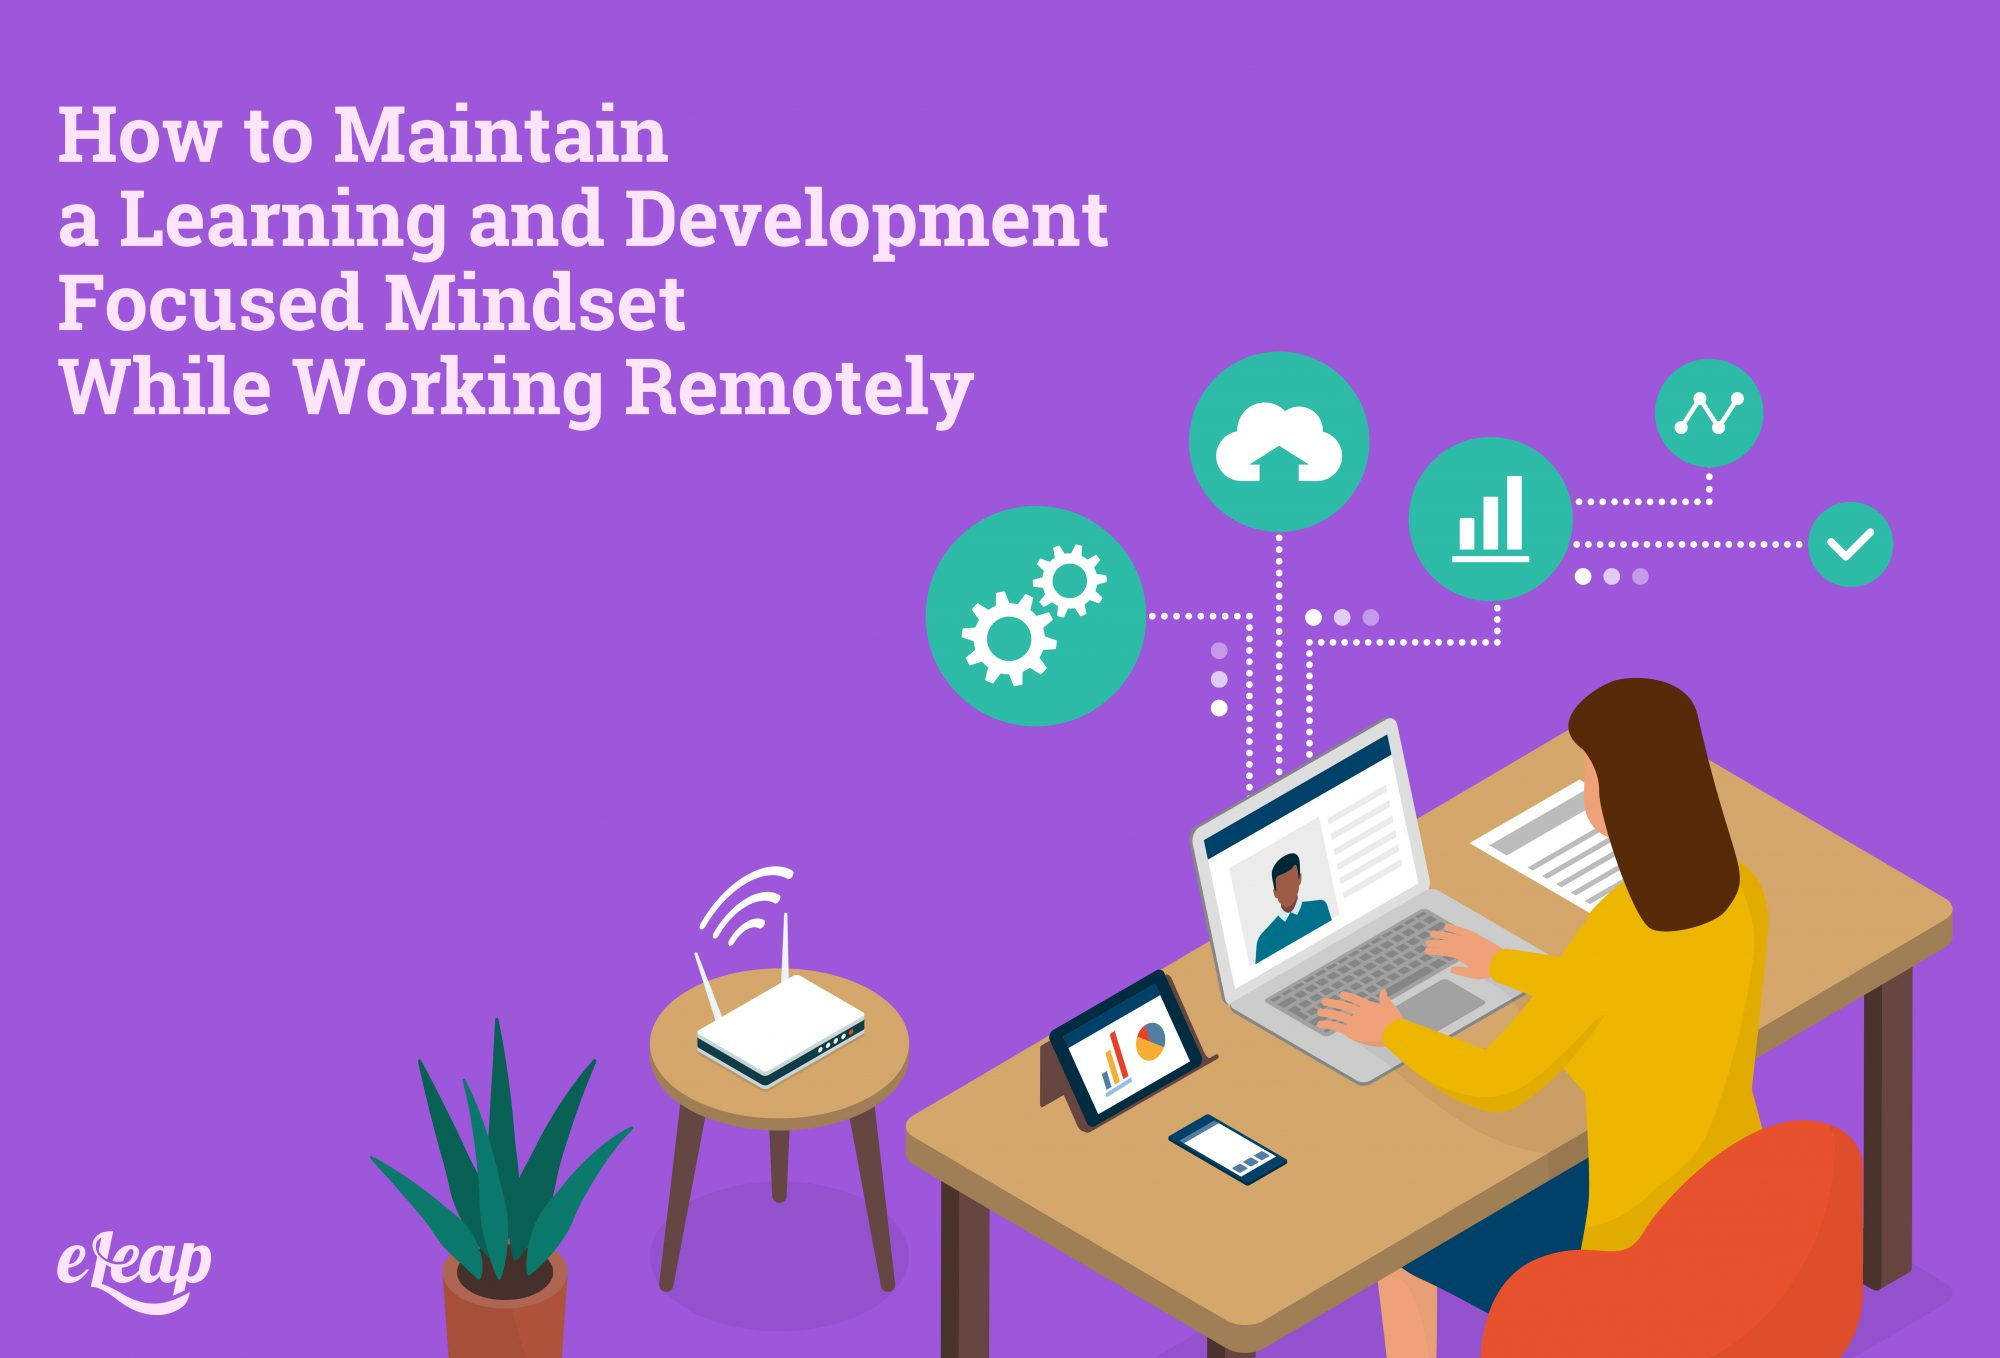 How to Maintain a Learning and Development Focused Mindset While Working Remotely